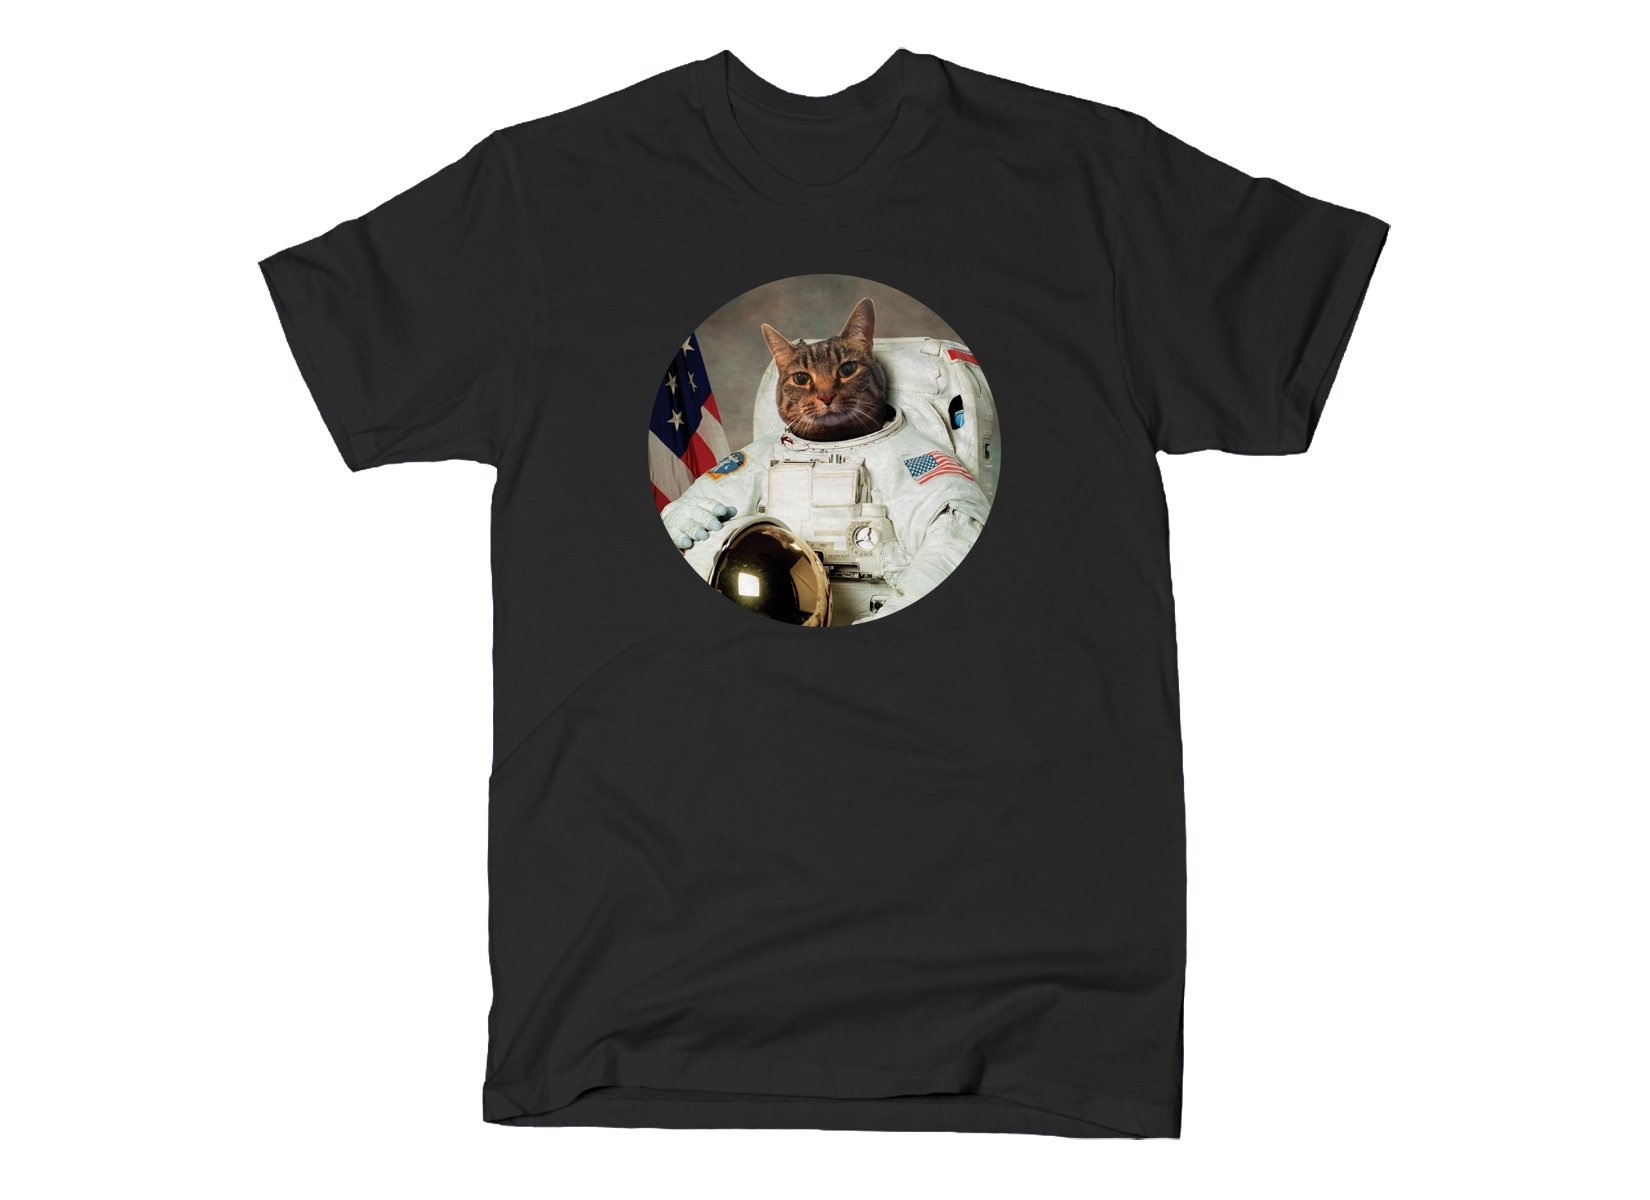 Astrocat on Mens T-Shirt